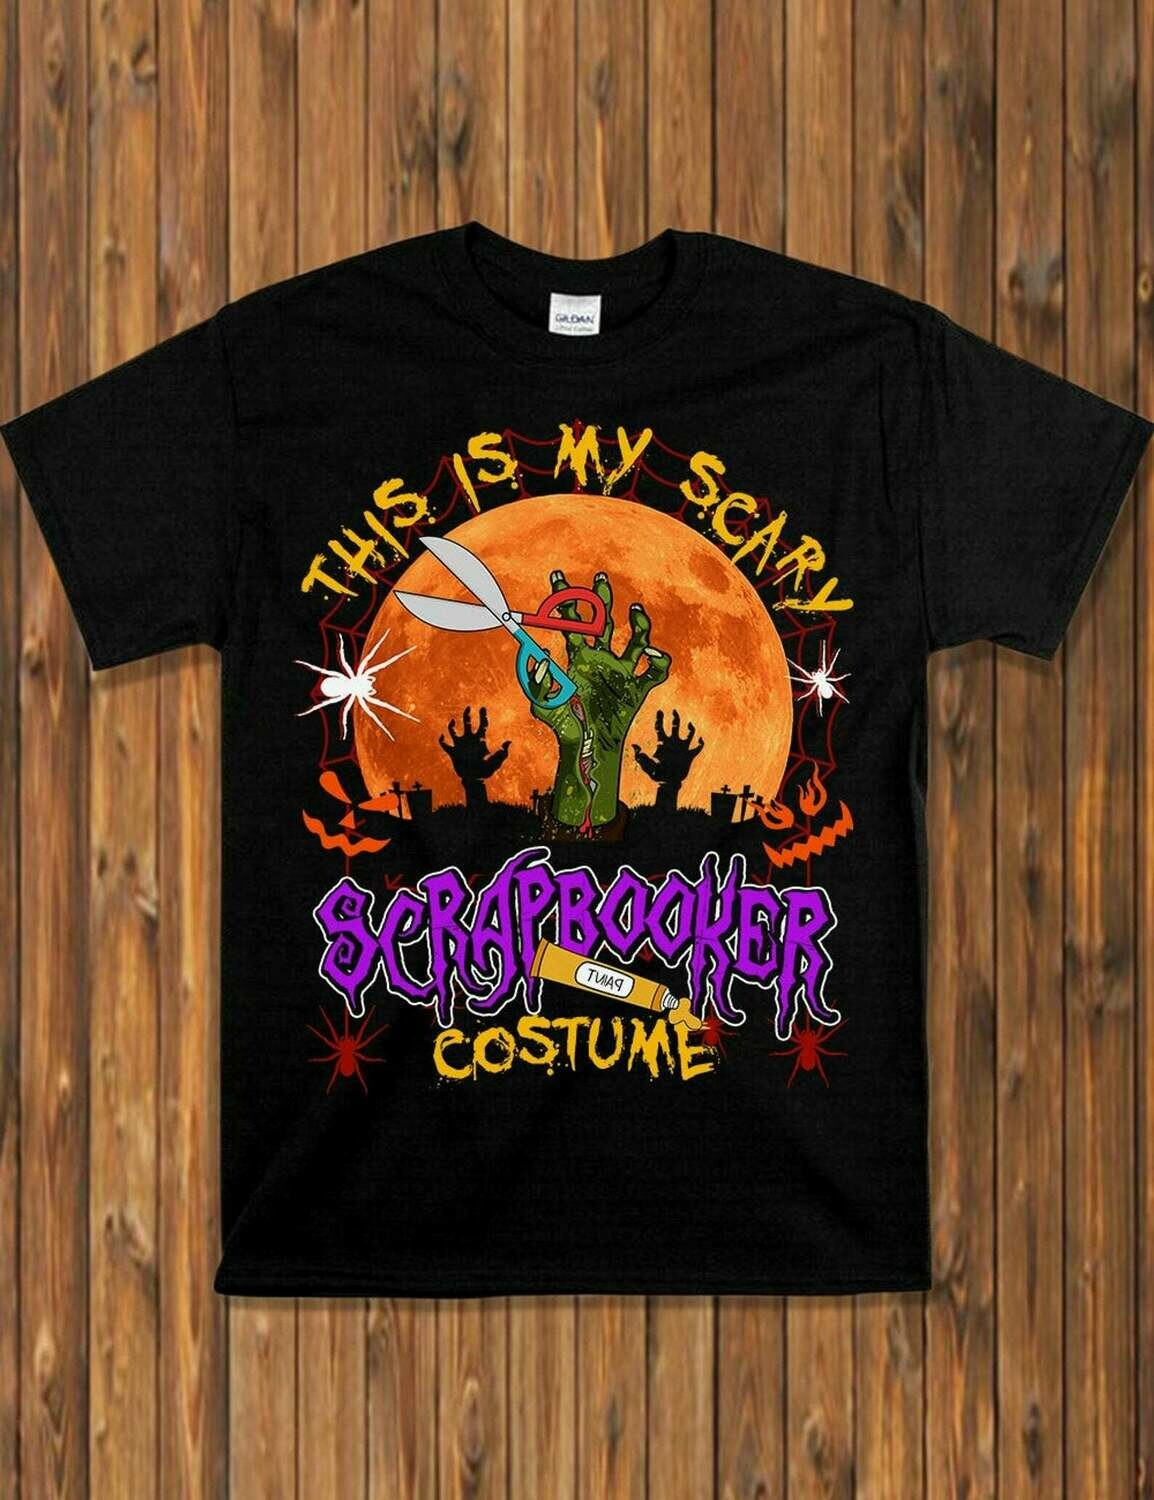 This Is My Scary Scrapbooker Costume - Scrapbooker Zombie Halloween Cosplay Gift Shirt For Lovers Halloween